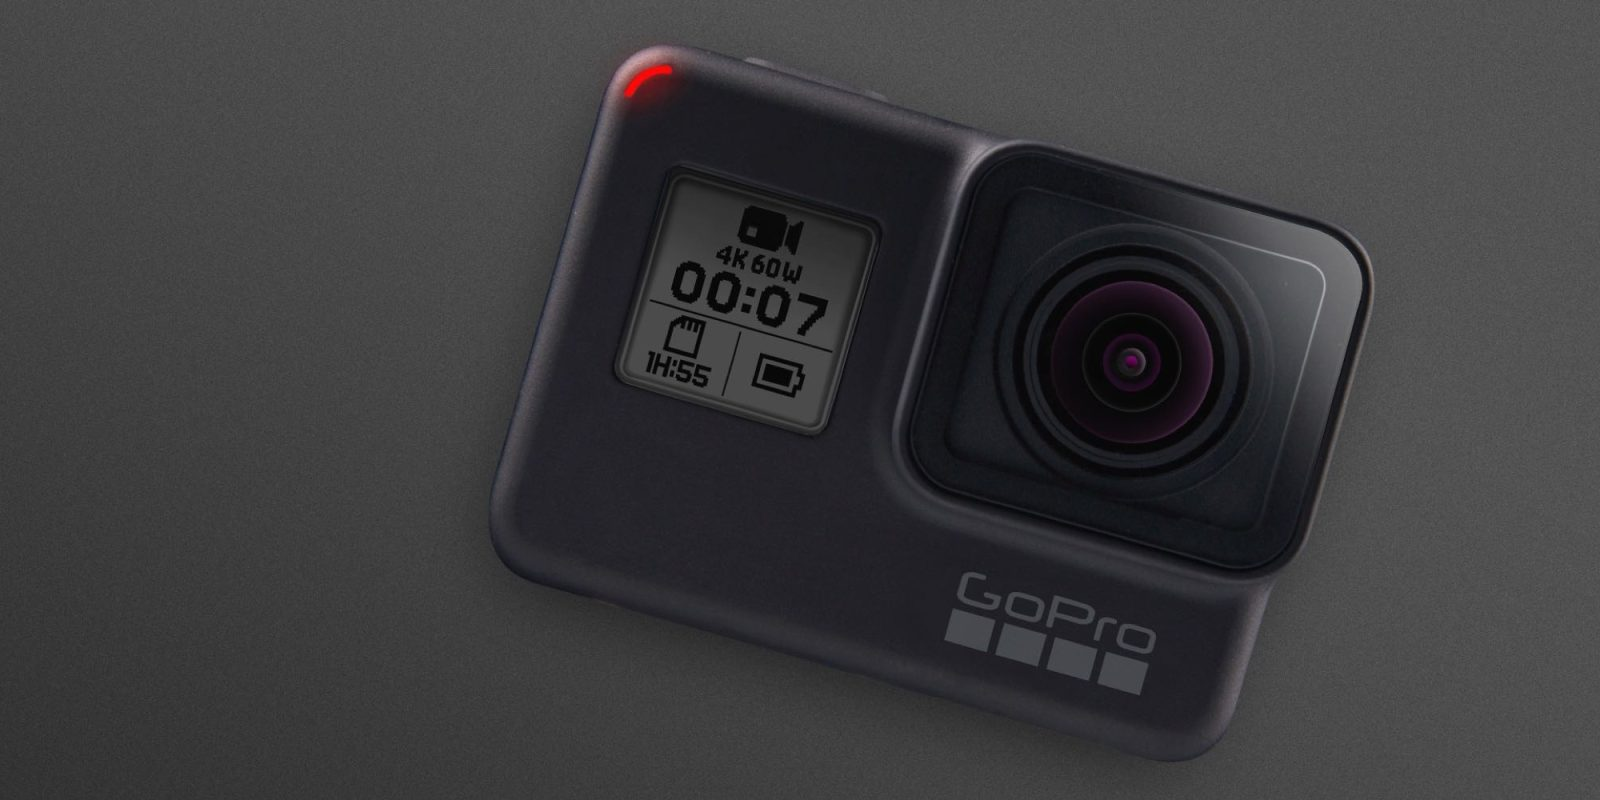 Slash $70 off the GoPro HERO7 Black at $329 and record in HyperSmooth 4K